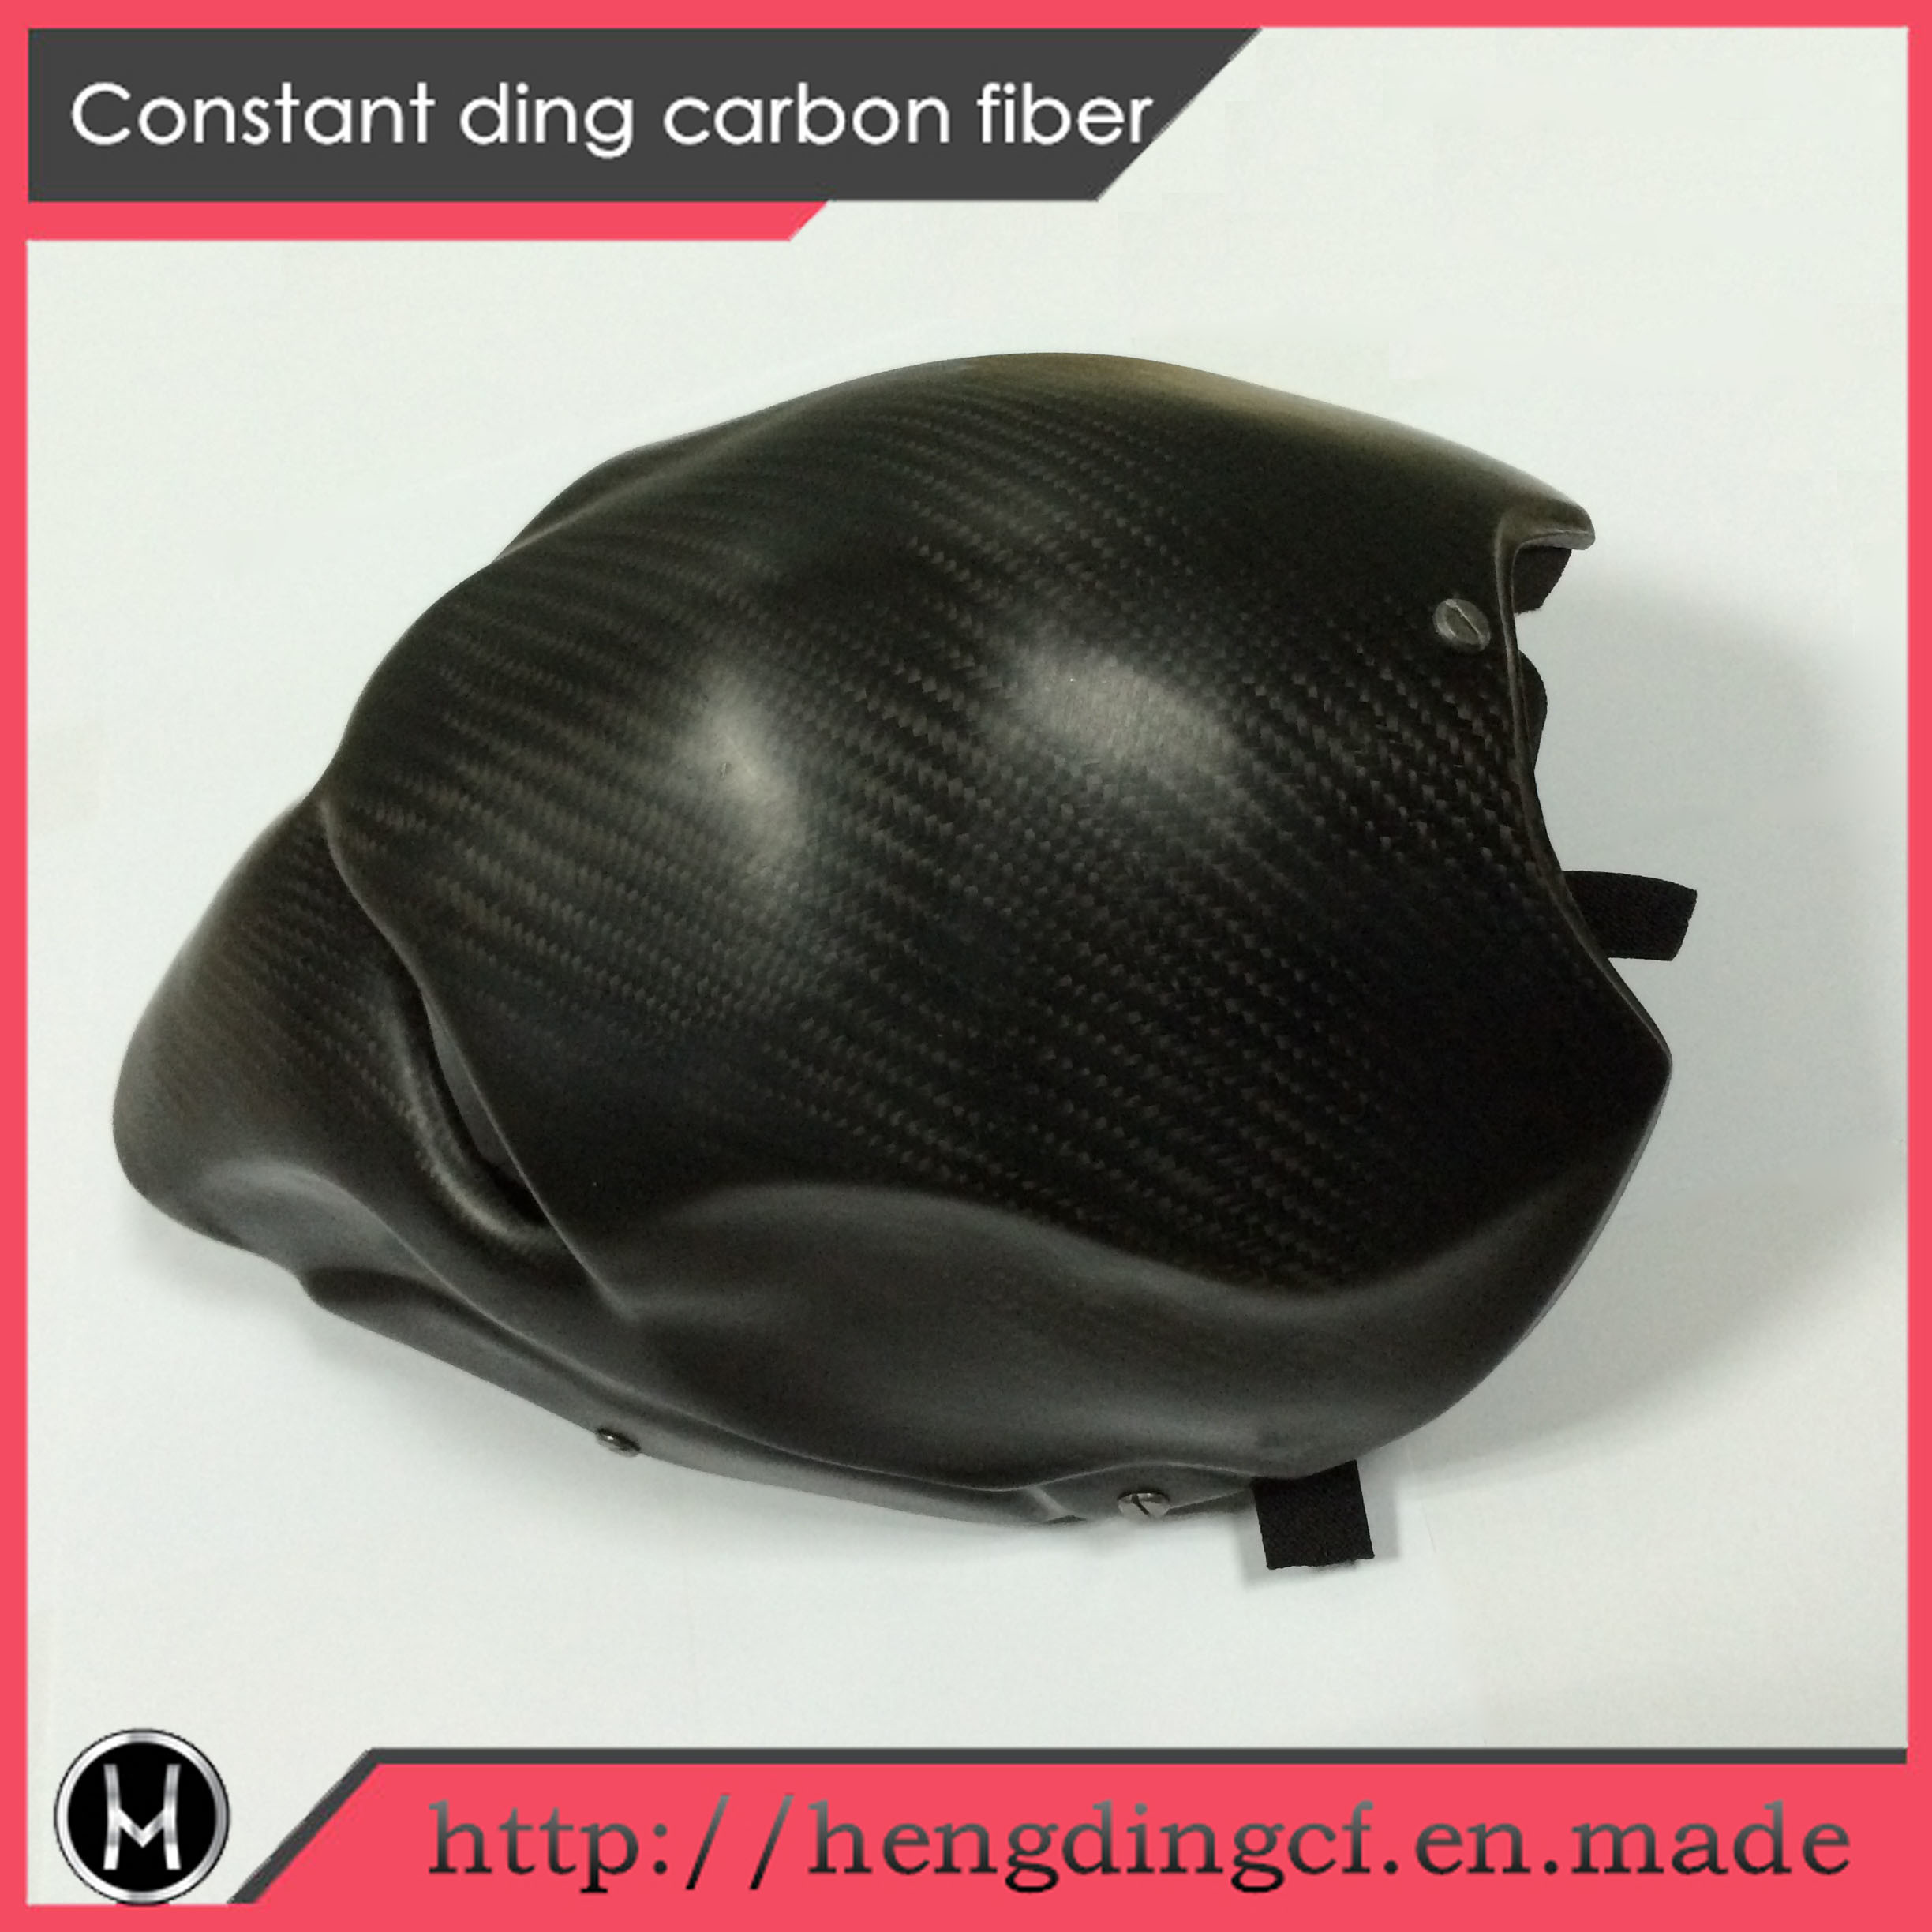 Wear-Resisting Anti-Static Carbon Fiber Helmet